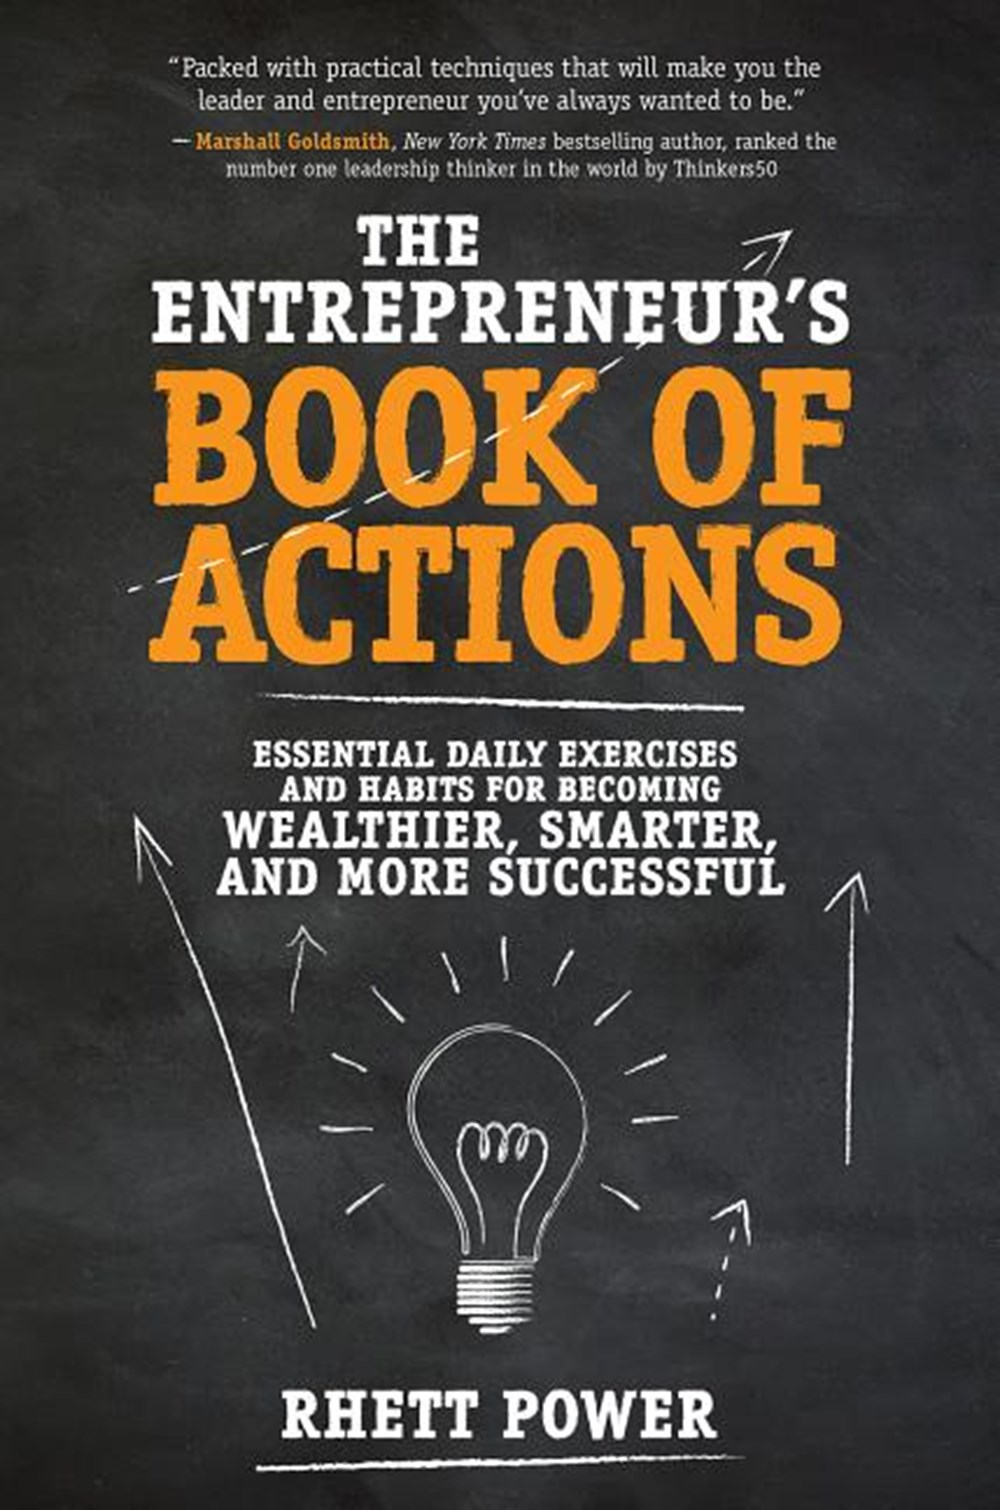 Entrepreneurs Book of Actions Essential Daily Exercises and Habits for Becoming Wealthier, Smarter,